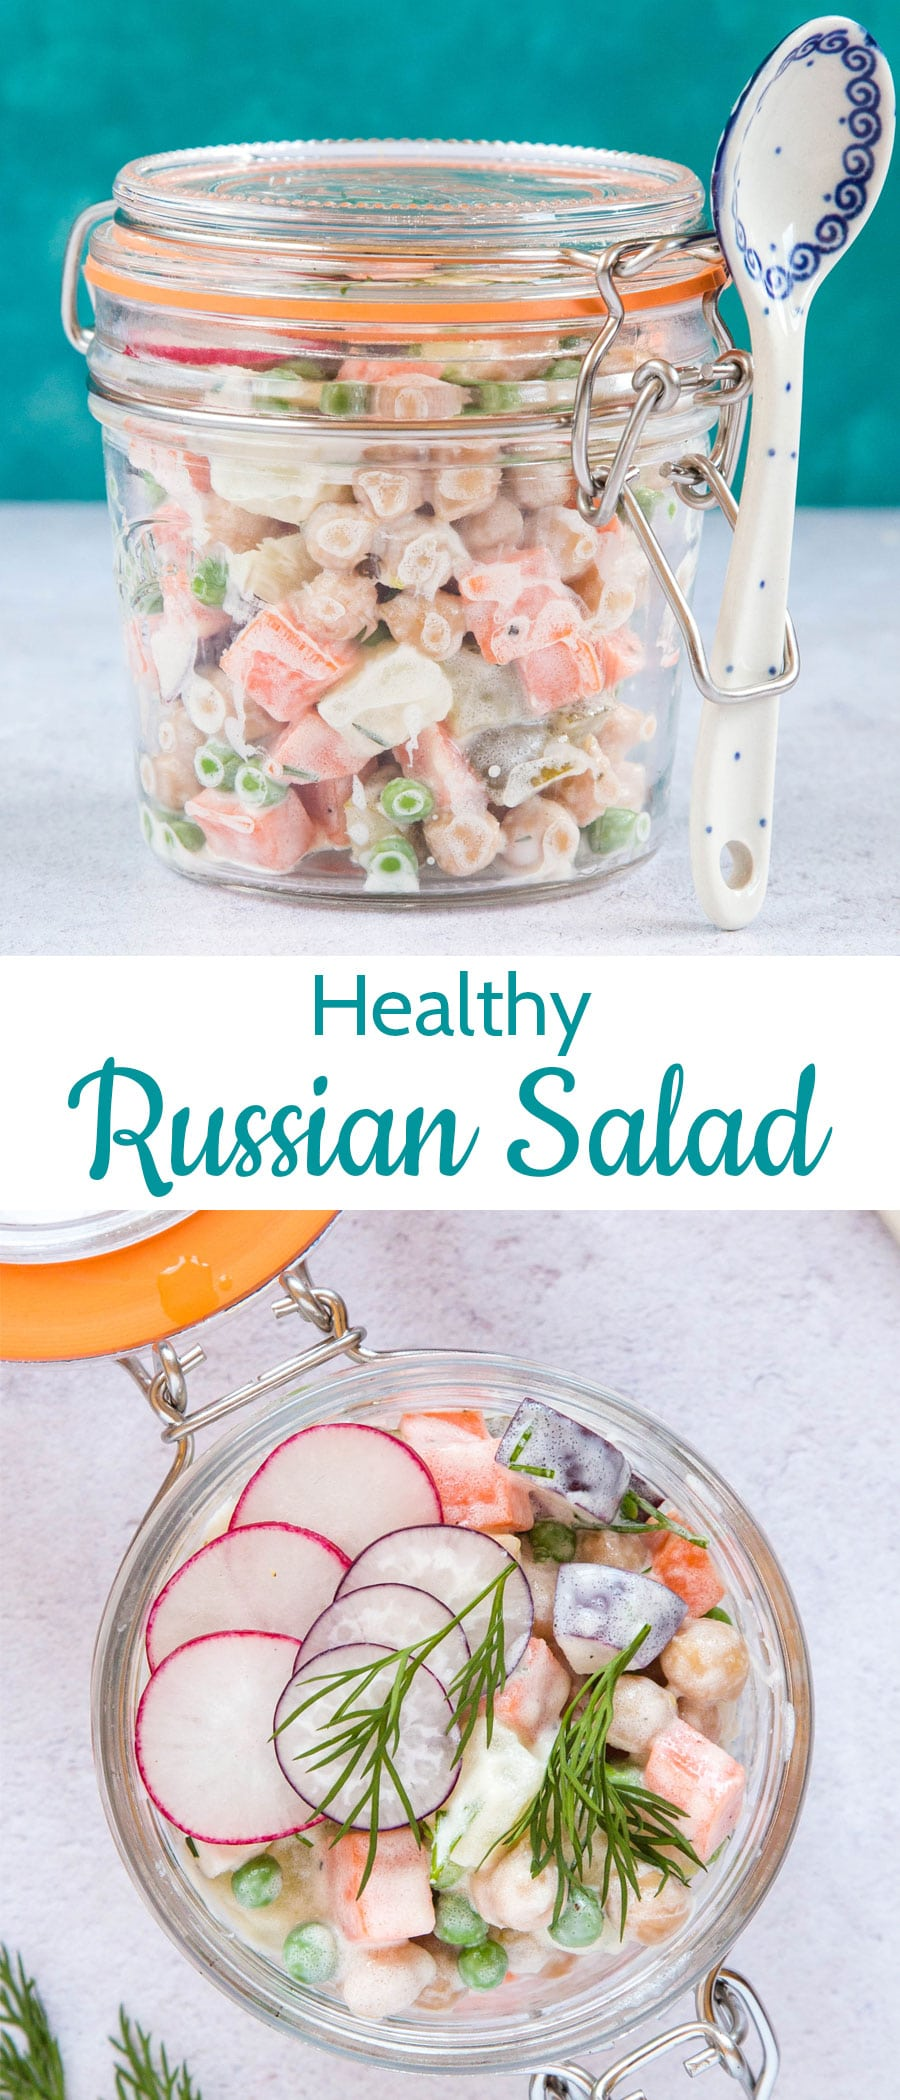 Creamy Russian potato salad in a mason jar with a blue and white spoon on the side of the jar and an overhead shot of Russian salad with a line of thin sliced radishes in a mason jar with a text overlay